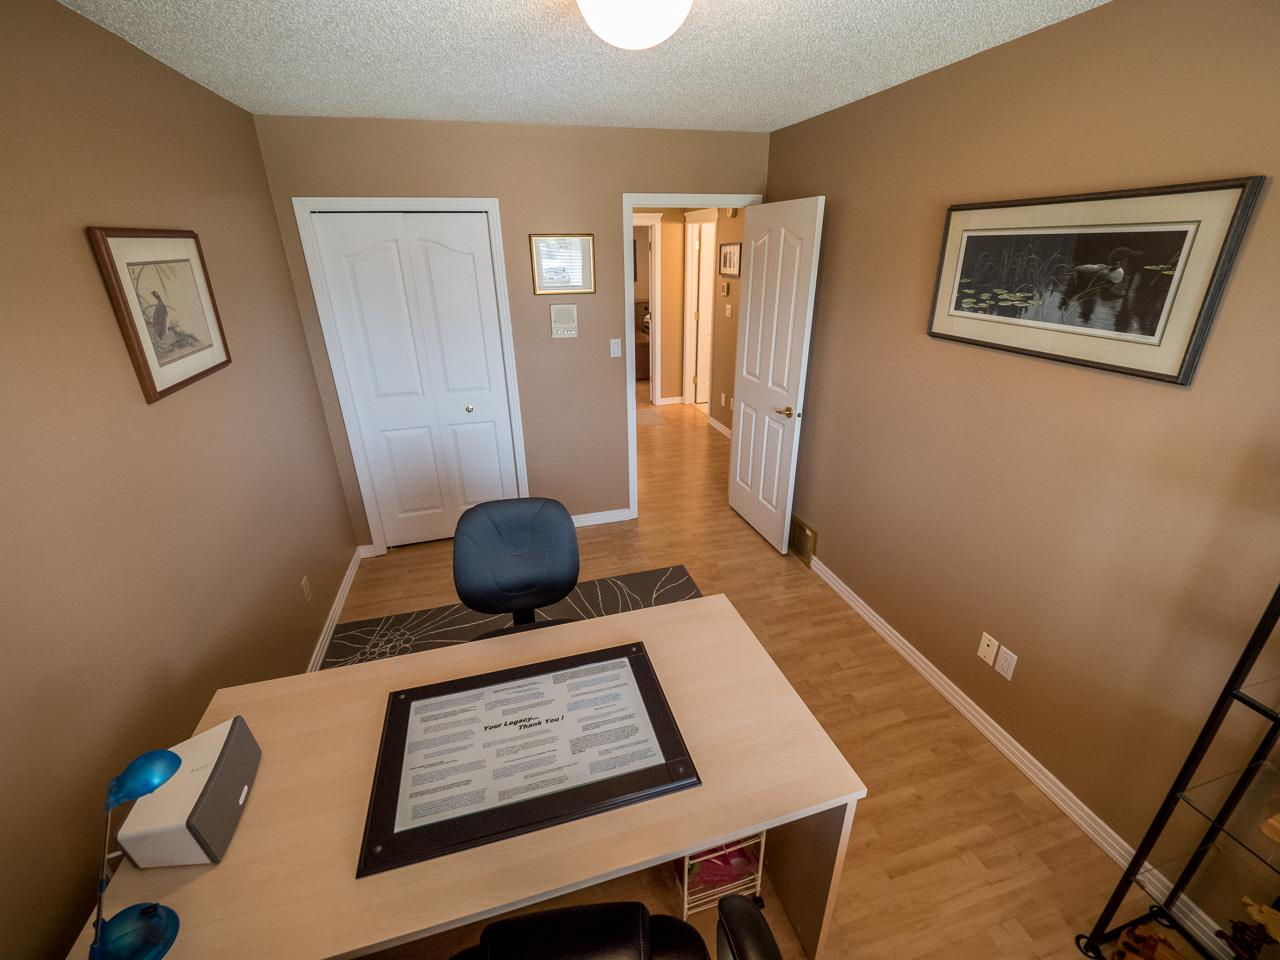 Photo 18: 205 WEBER Place in Edmonton: Zone 20 House for sale : MLS® # E4077601